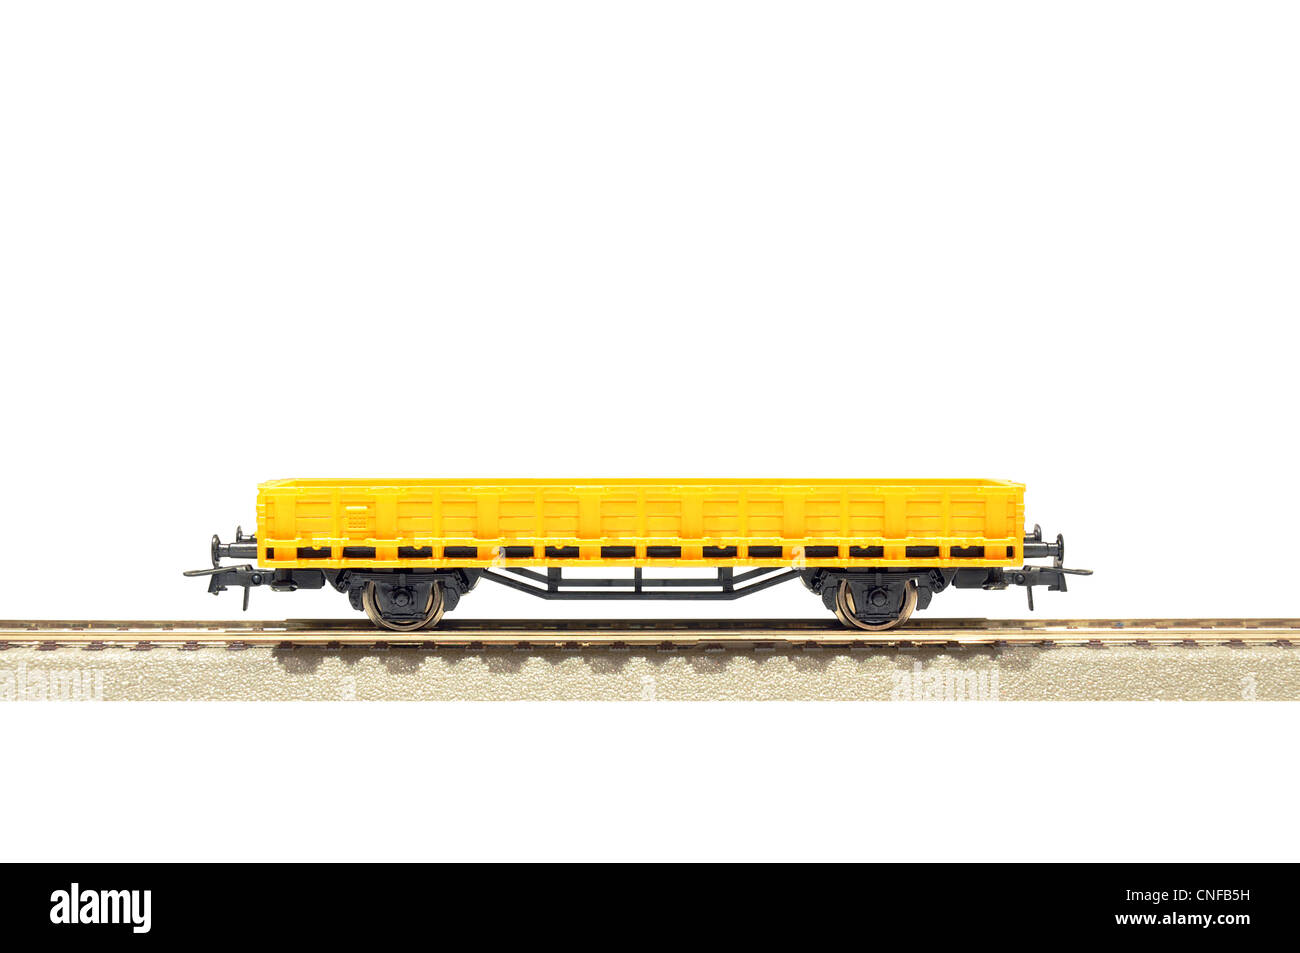 yellow cargo carriage railroad toy model, H0 scale, isolated on white with clipping path - Stock Image